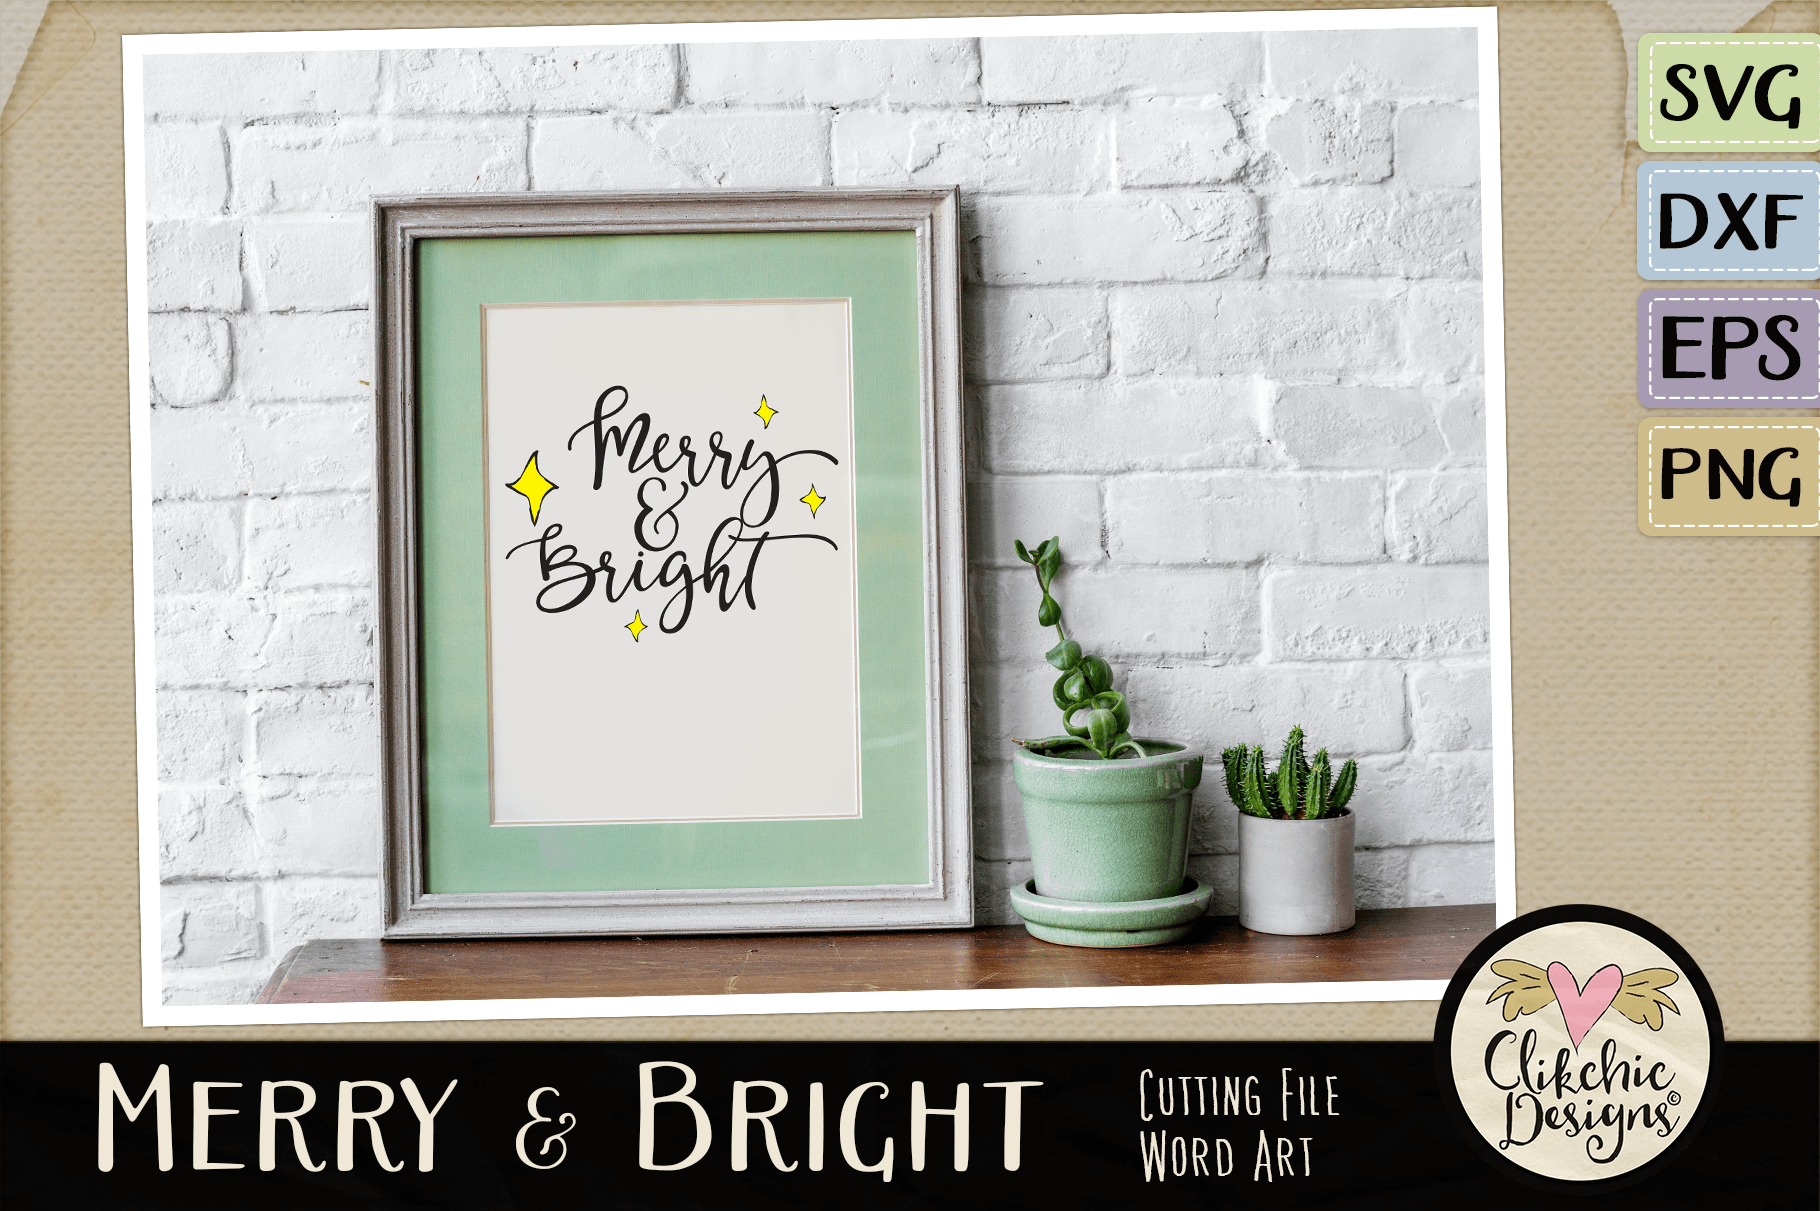 Christmas SVG - Merry & Bright Cutting file Clipart Word Art example image 3